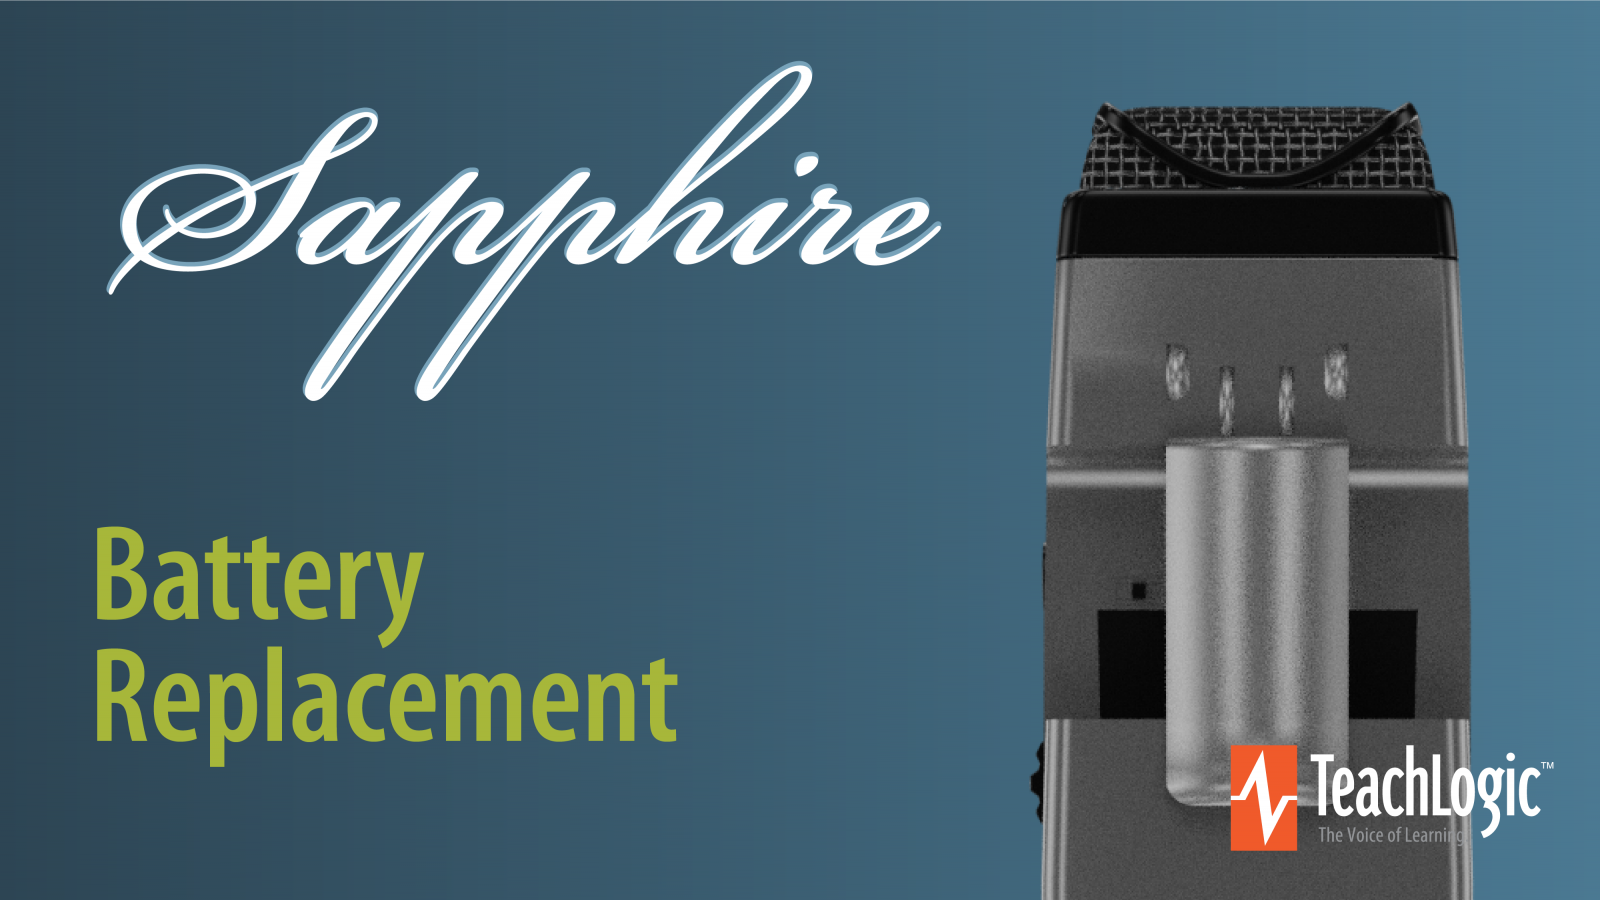 TeachLogic Sapphire Battery Replacement